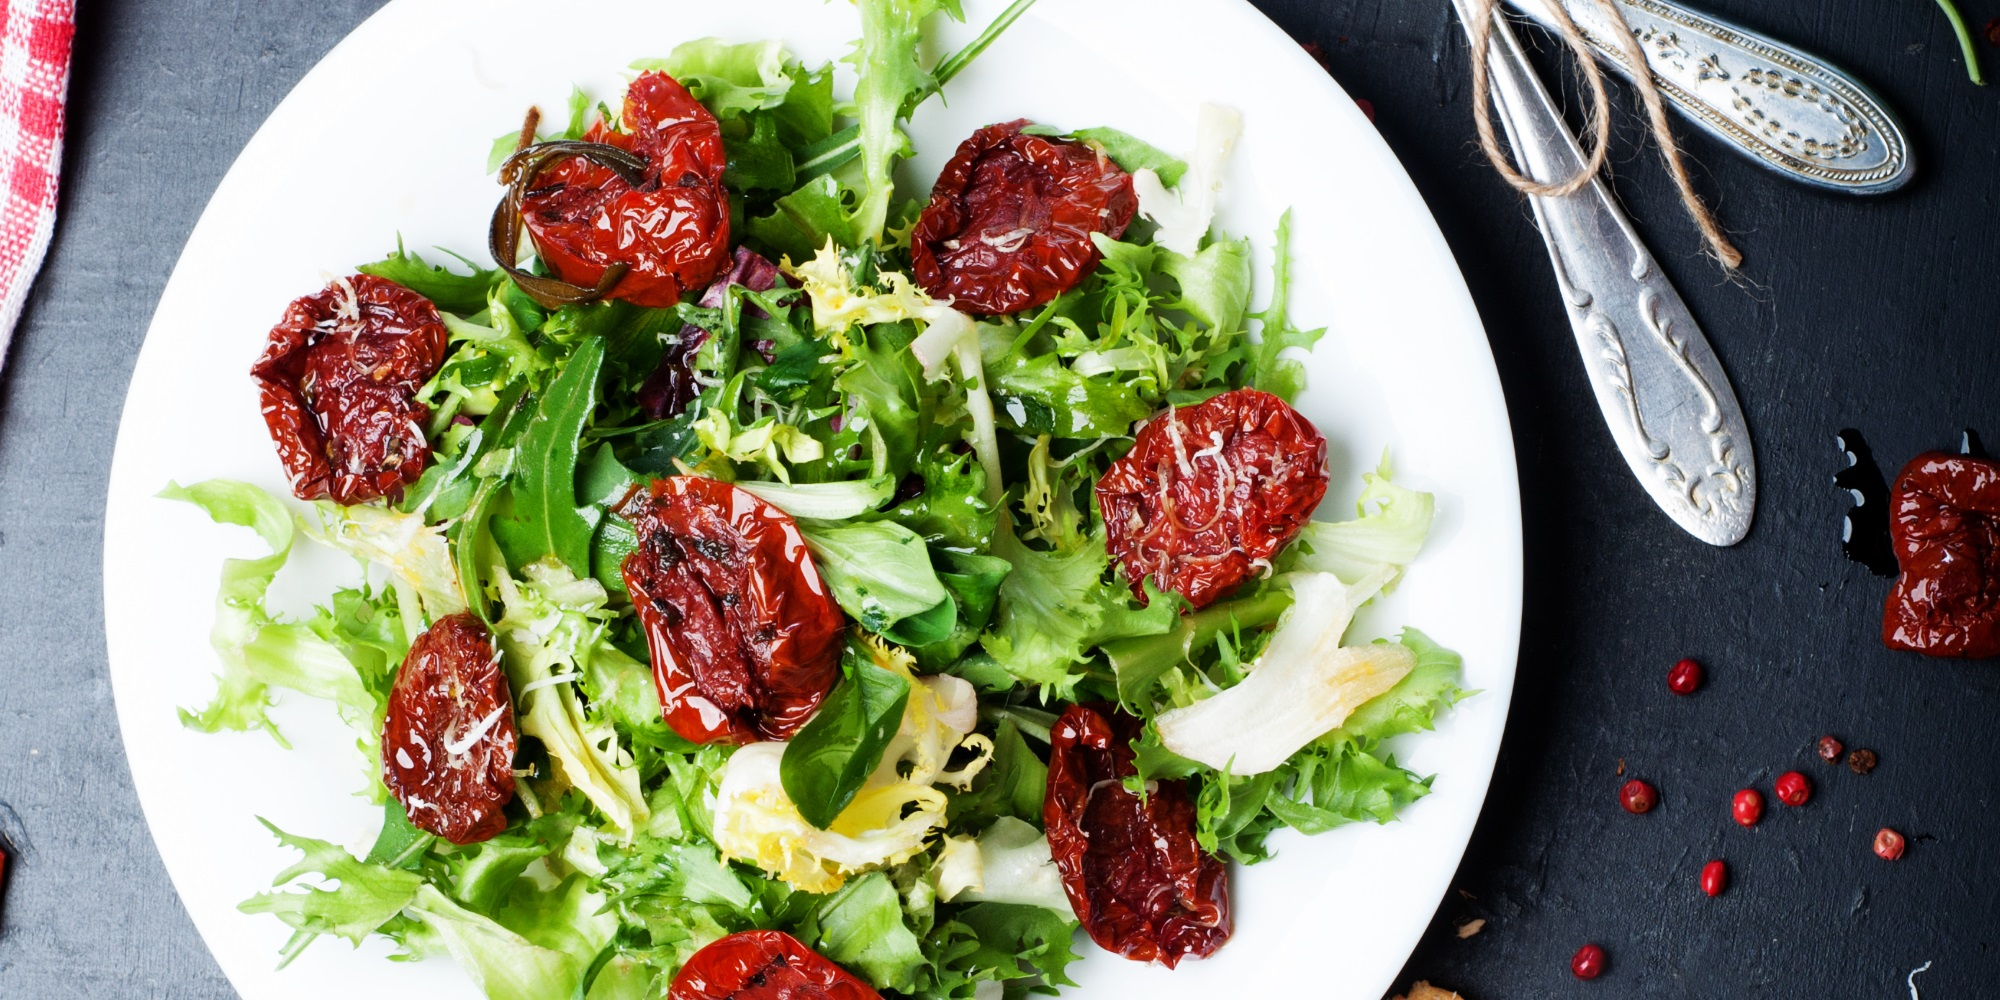 Iceberg lettuce and dried tomatoes